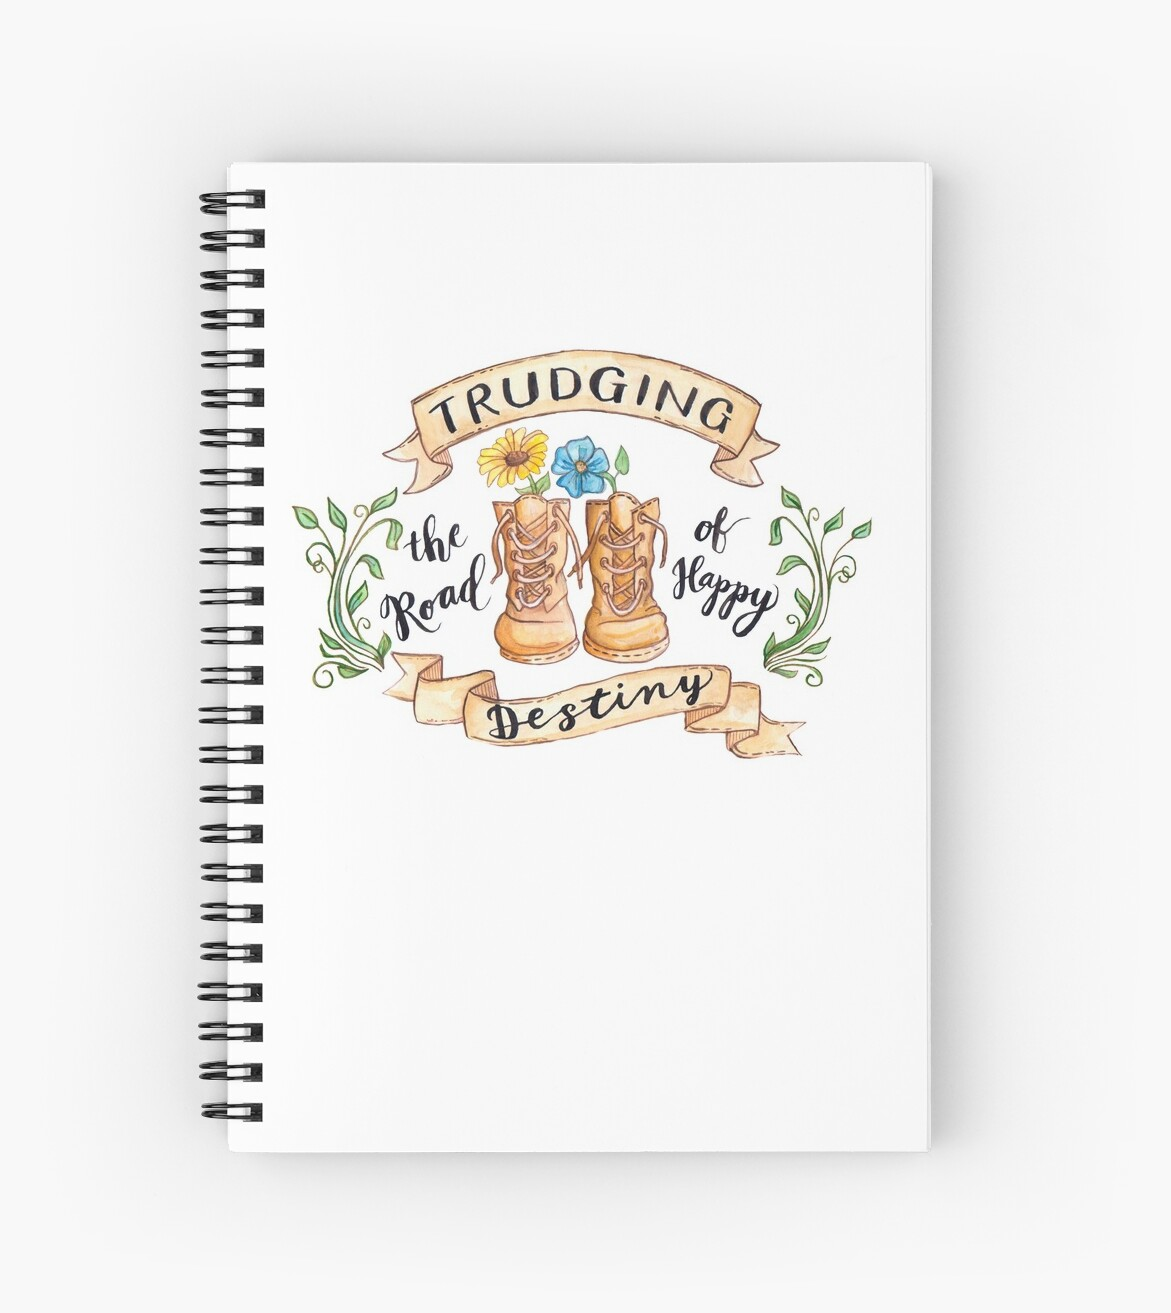 Notebook Weiß Trudging The Road Of Happy Destiny Spiral Notebook By Joann Weiss